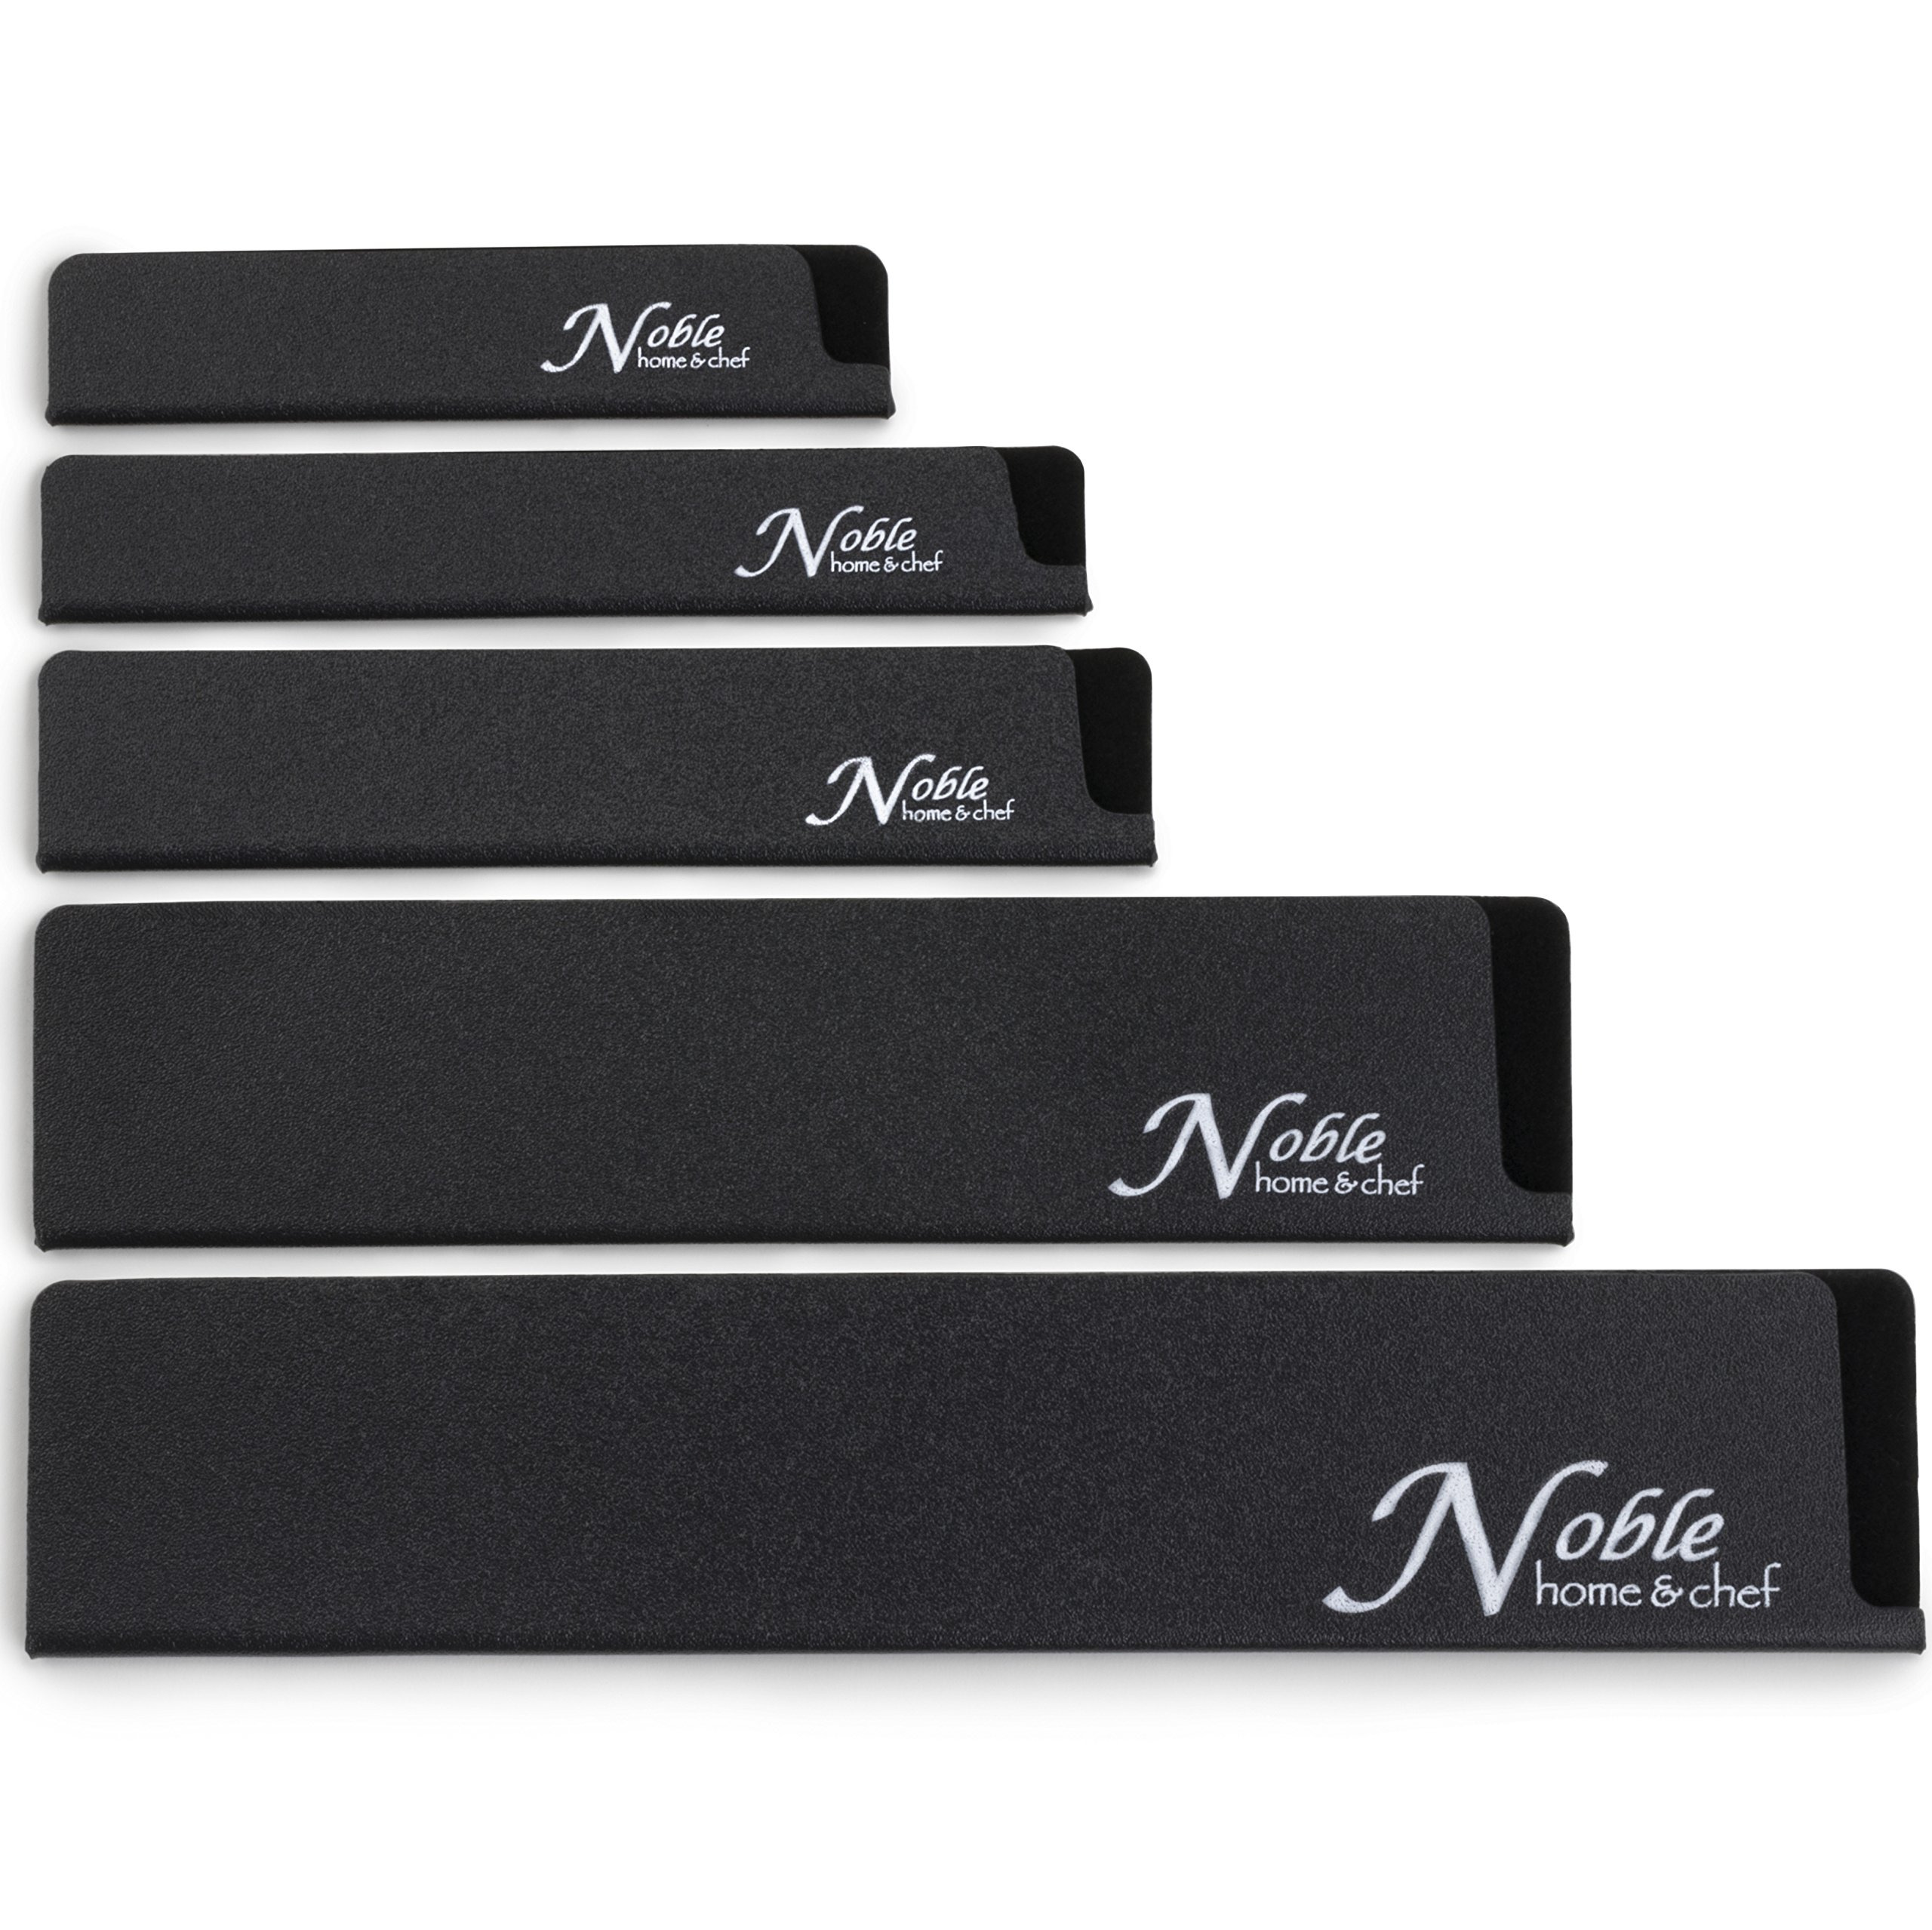 5-Piece Universal Knife Edge Guards are More Durable, BPA-Free, Gentle on Your Blades, and Long-Lasting. Noble Home & Chef Knife Covers Are Non-Toxic and Abrasion Resistant! (Knives Not Included) by Noble Home & Chef